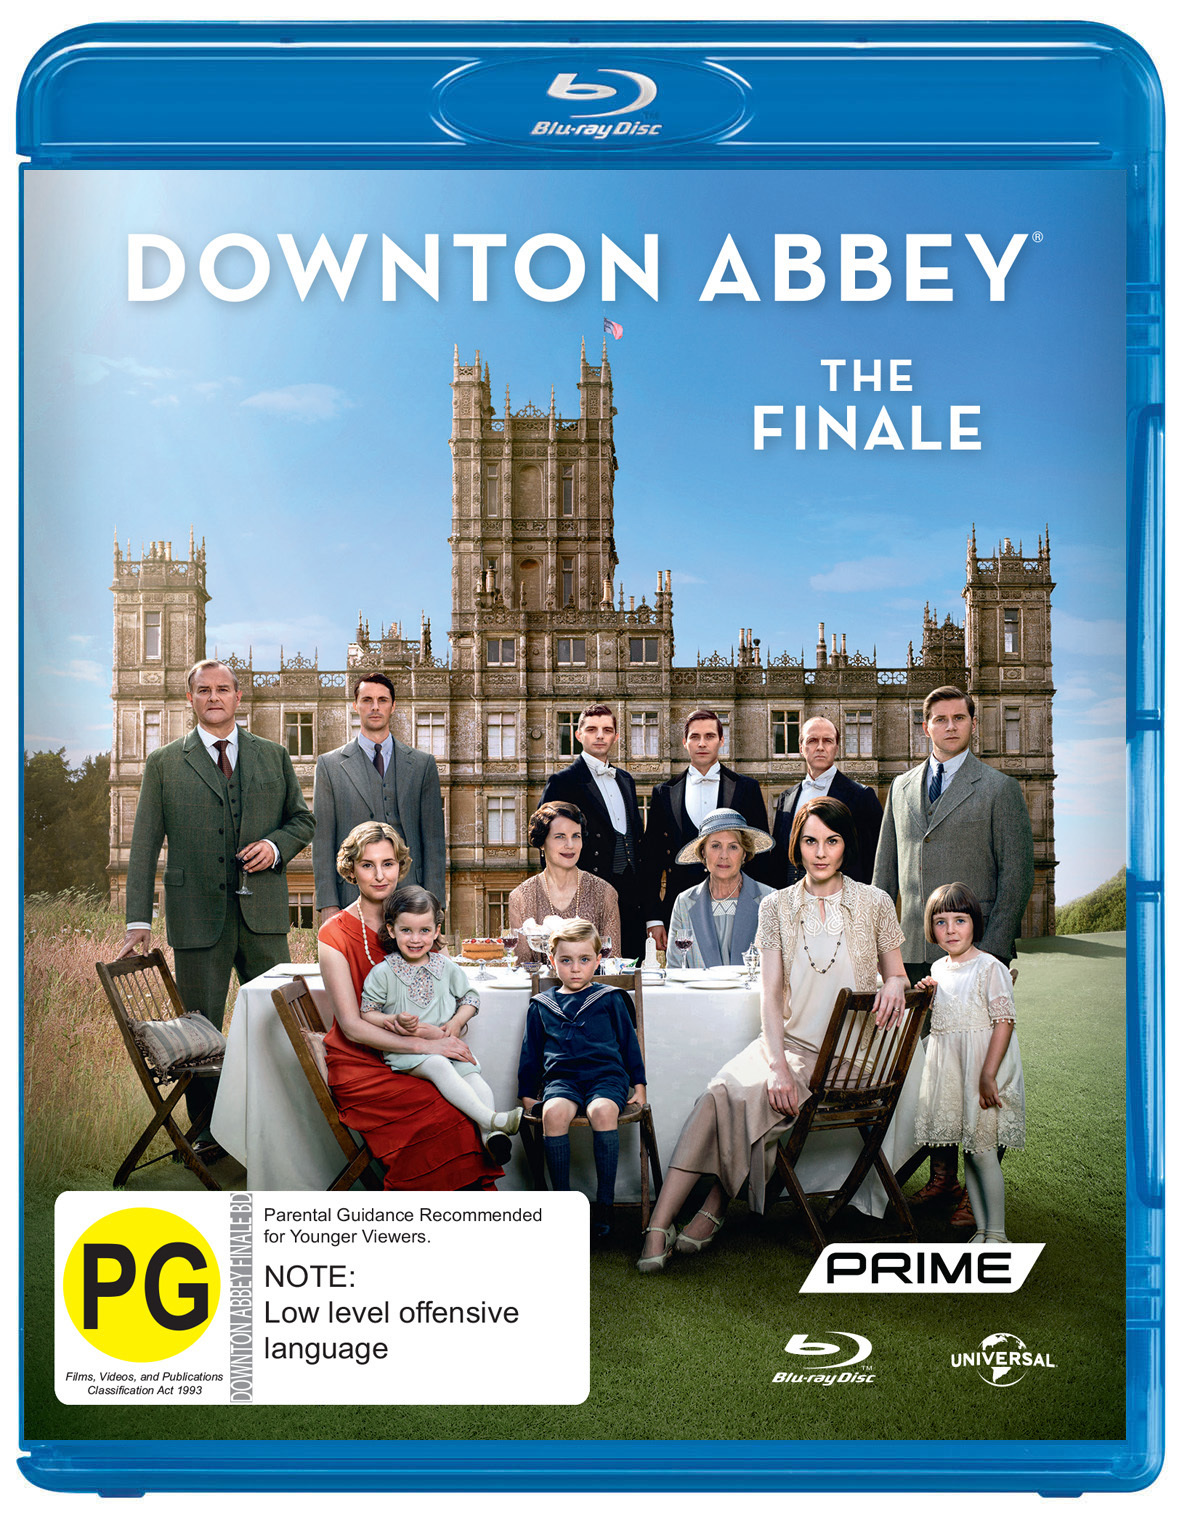 Downton Abbey: Christmas 2015 - Final Episode on Blu-ray image